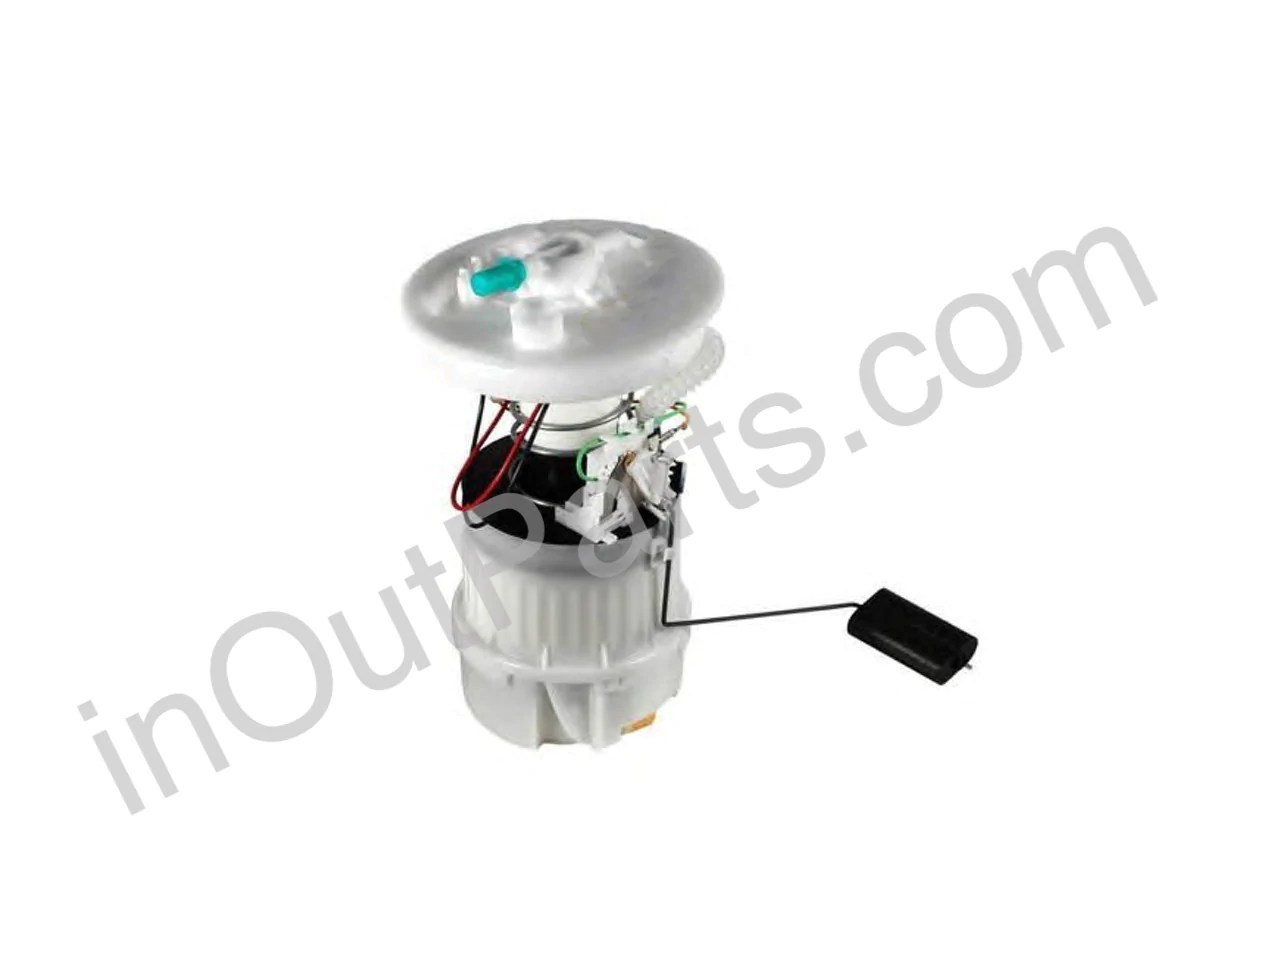 hight resolution of fuel filter fits ford focus 2005 2006 2007 2008 2009 2010 2011 c max inout parts